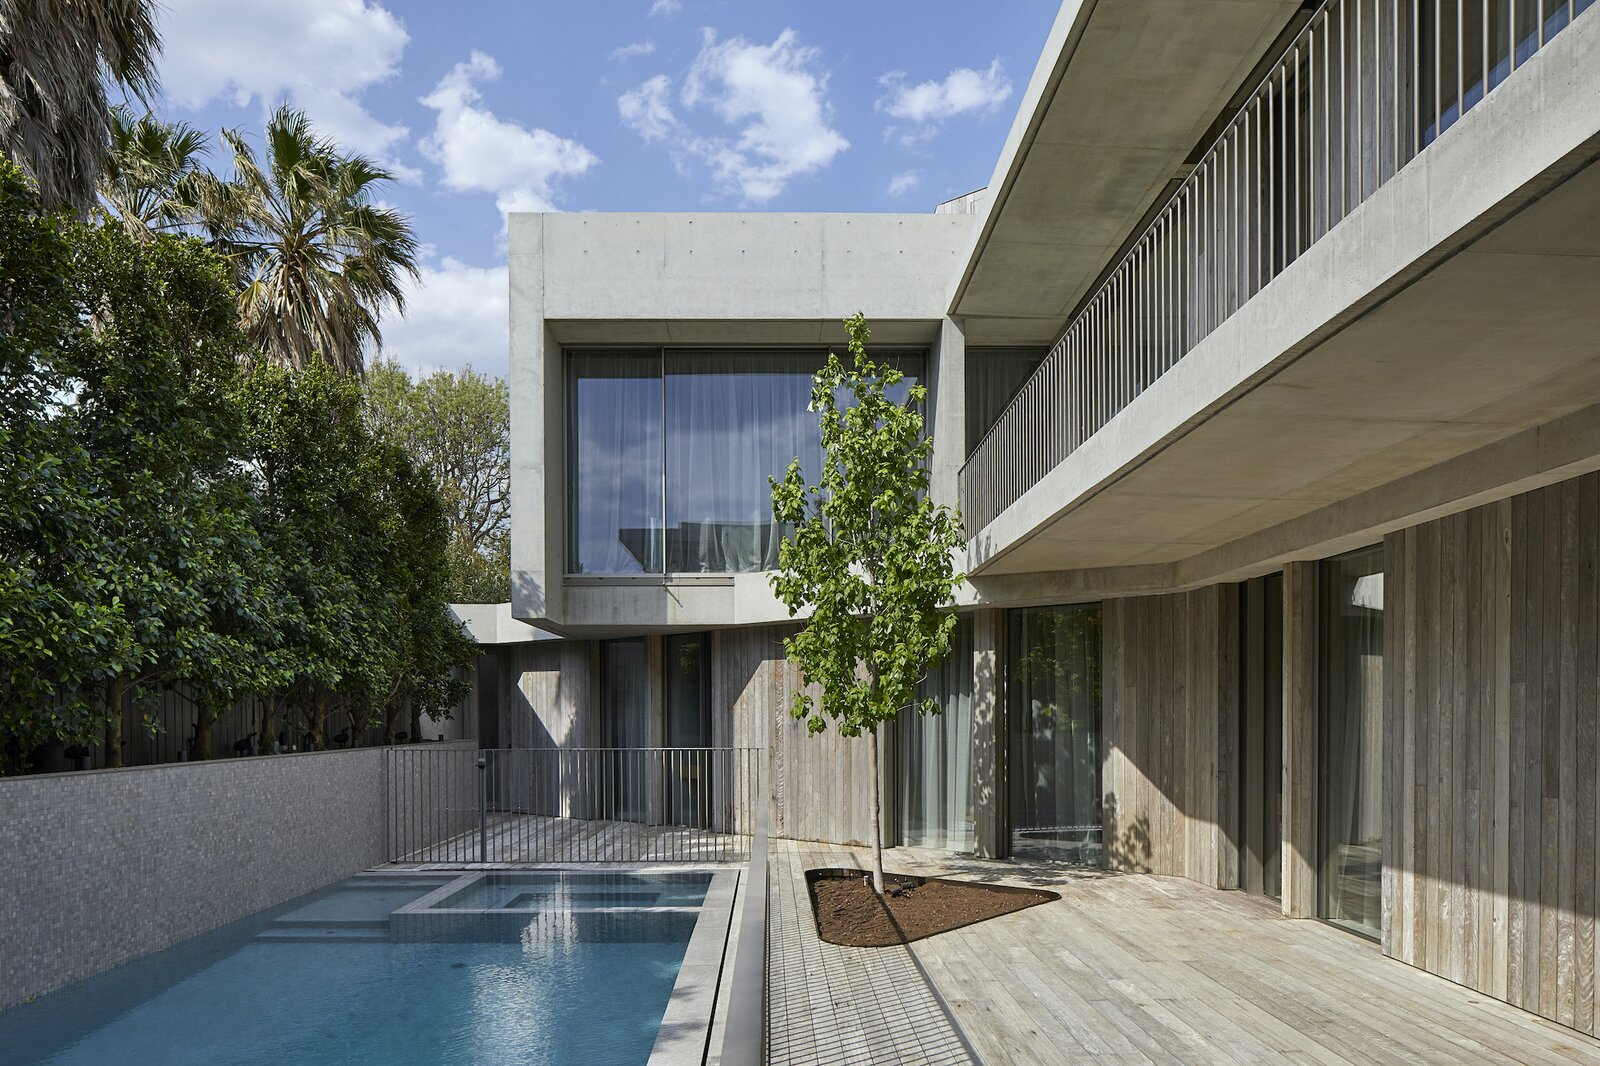 Courtyard and pool of Silver Linings by Rachcoff Vella Architects.